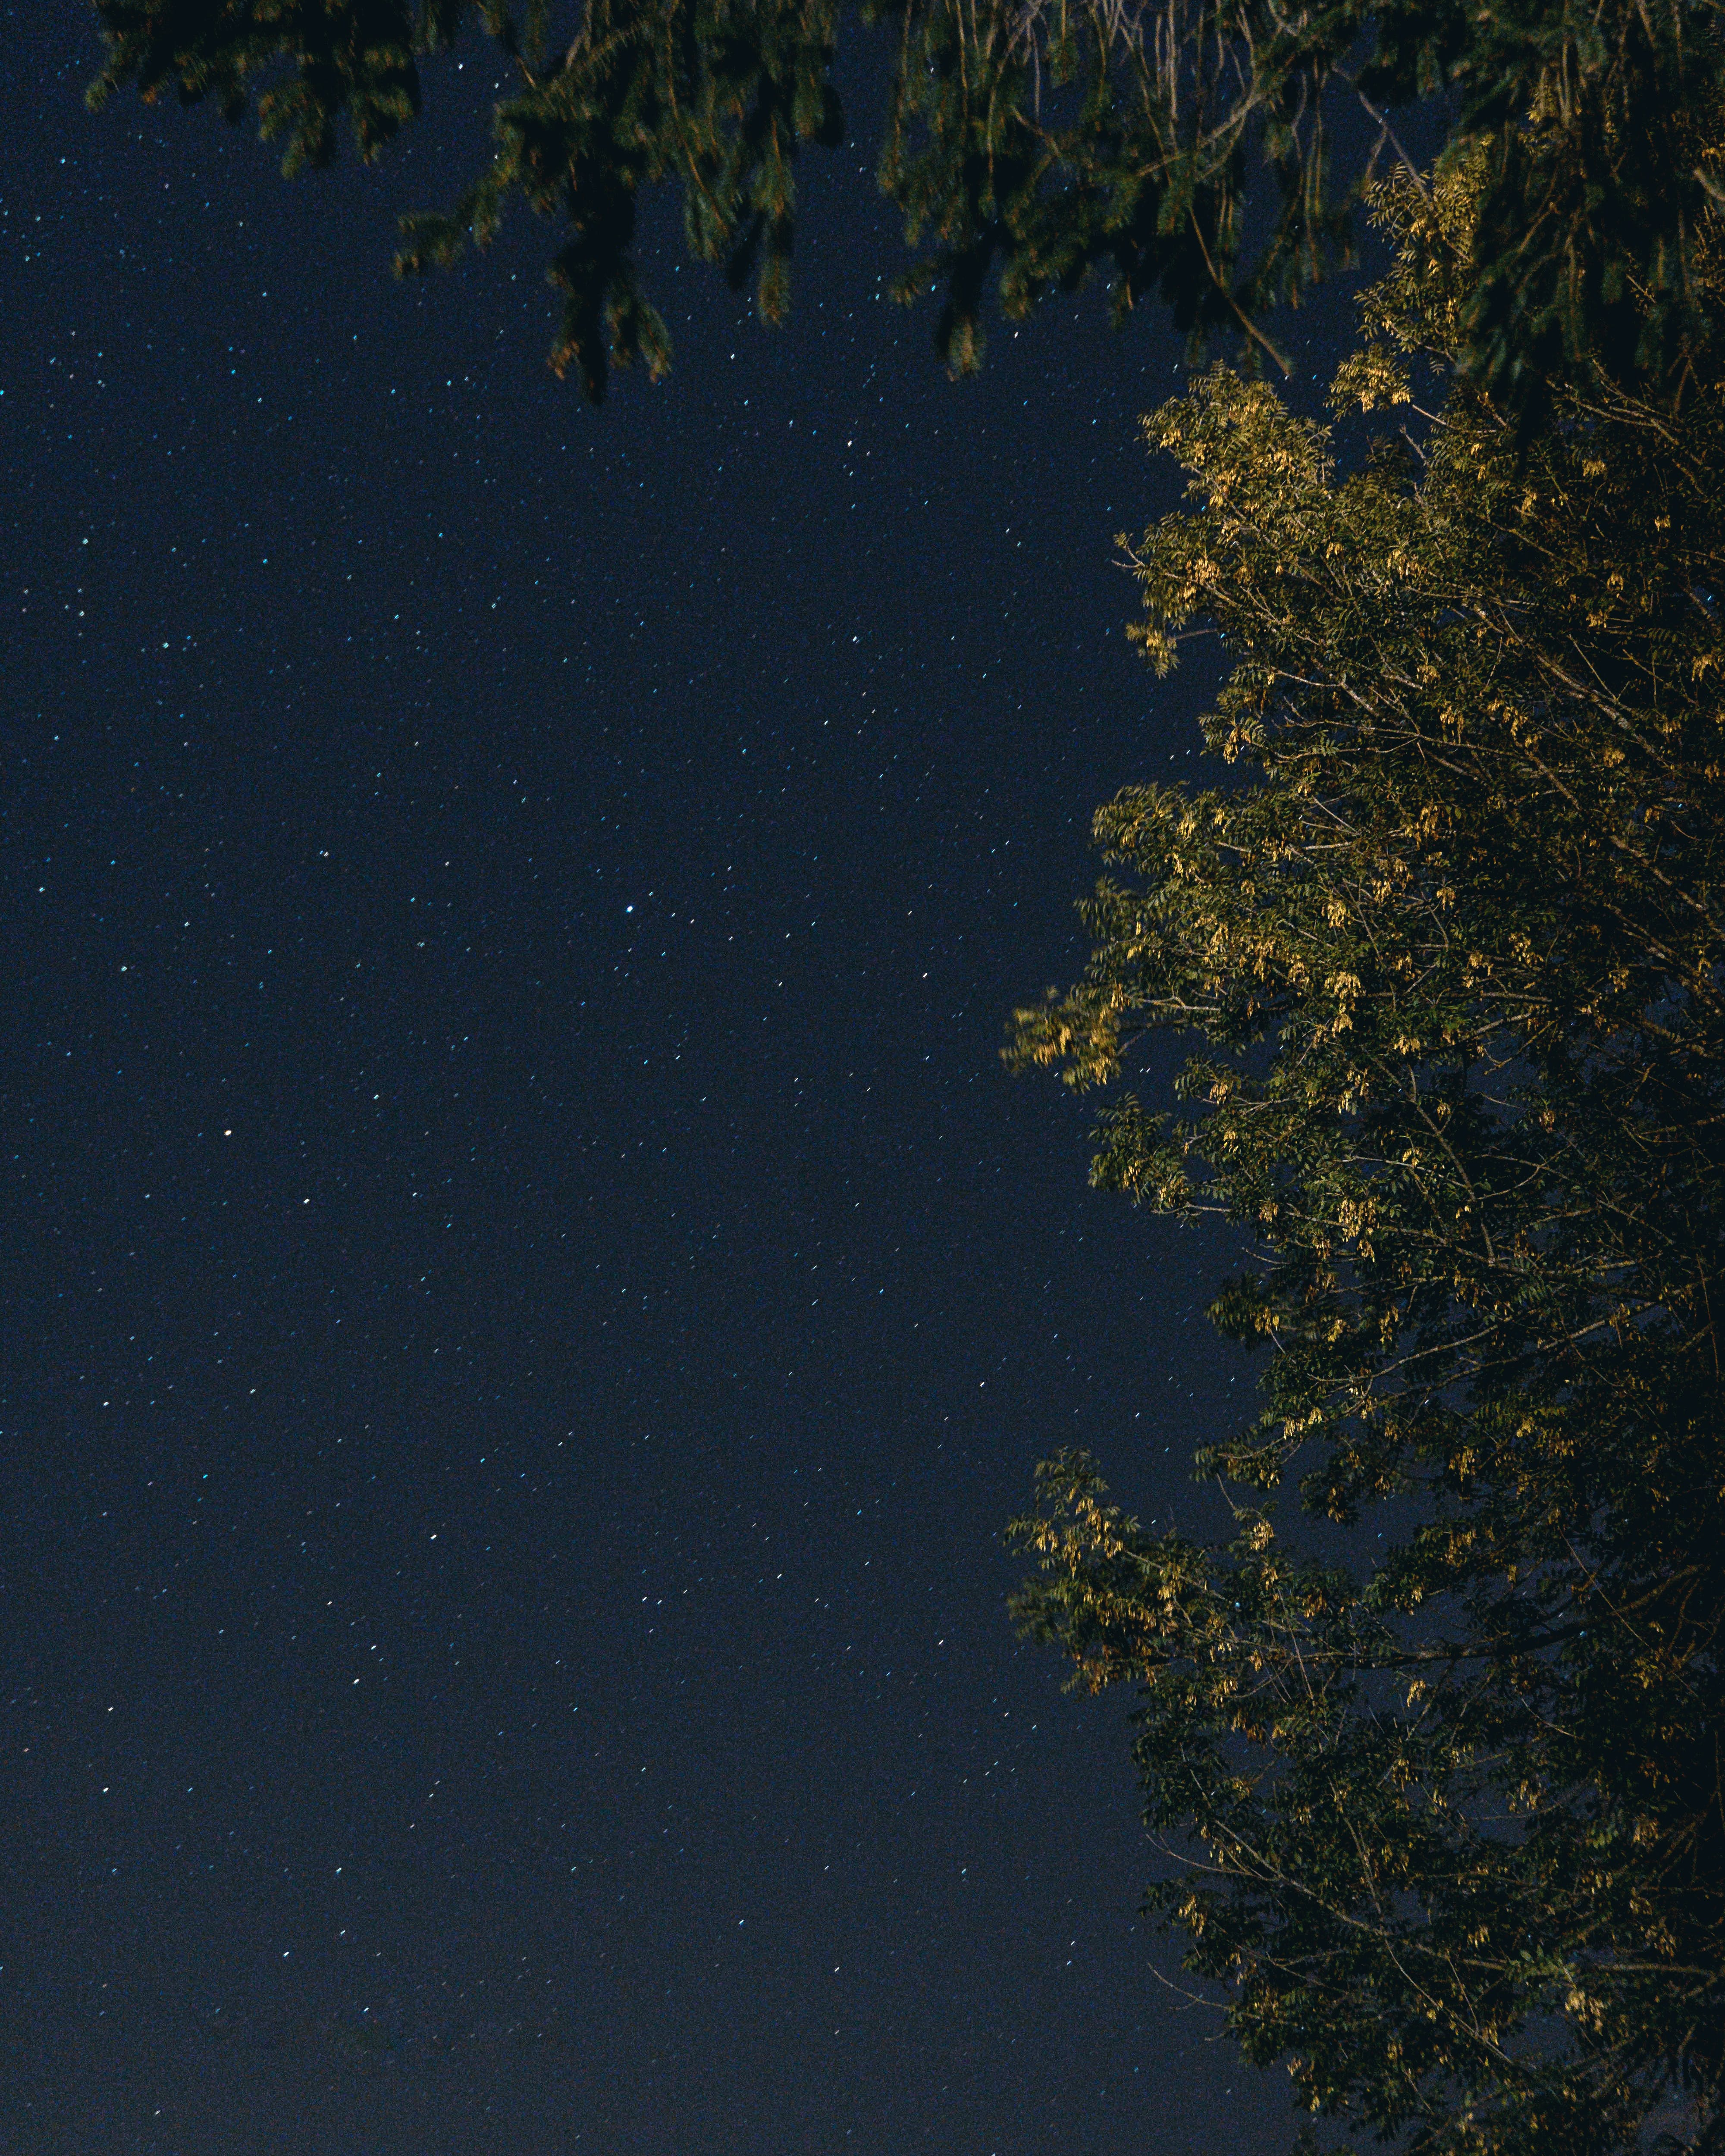 Free stock photo of astrophotography, night, stars, trees